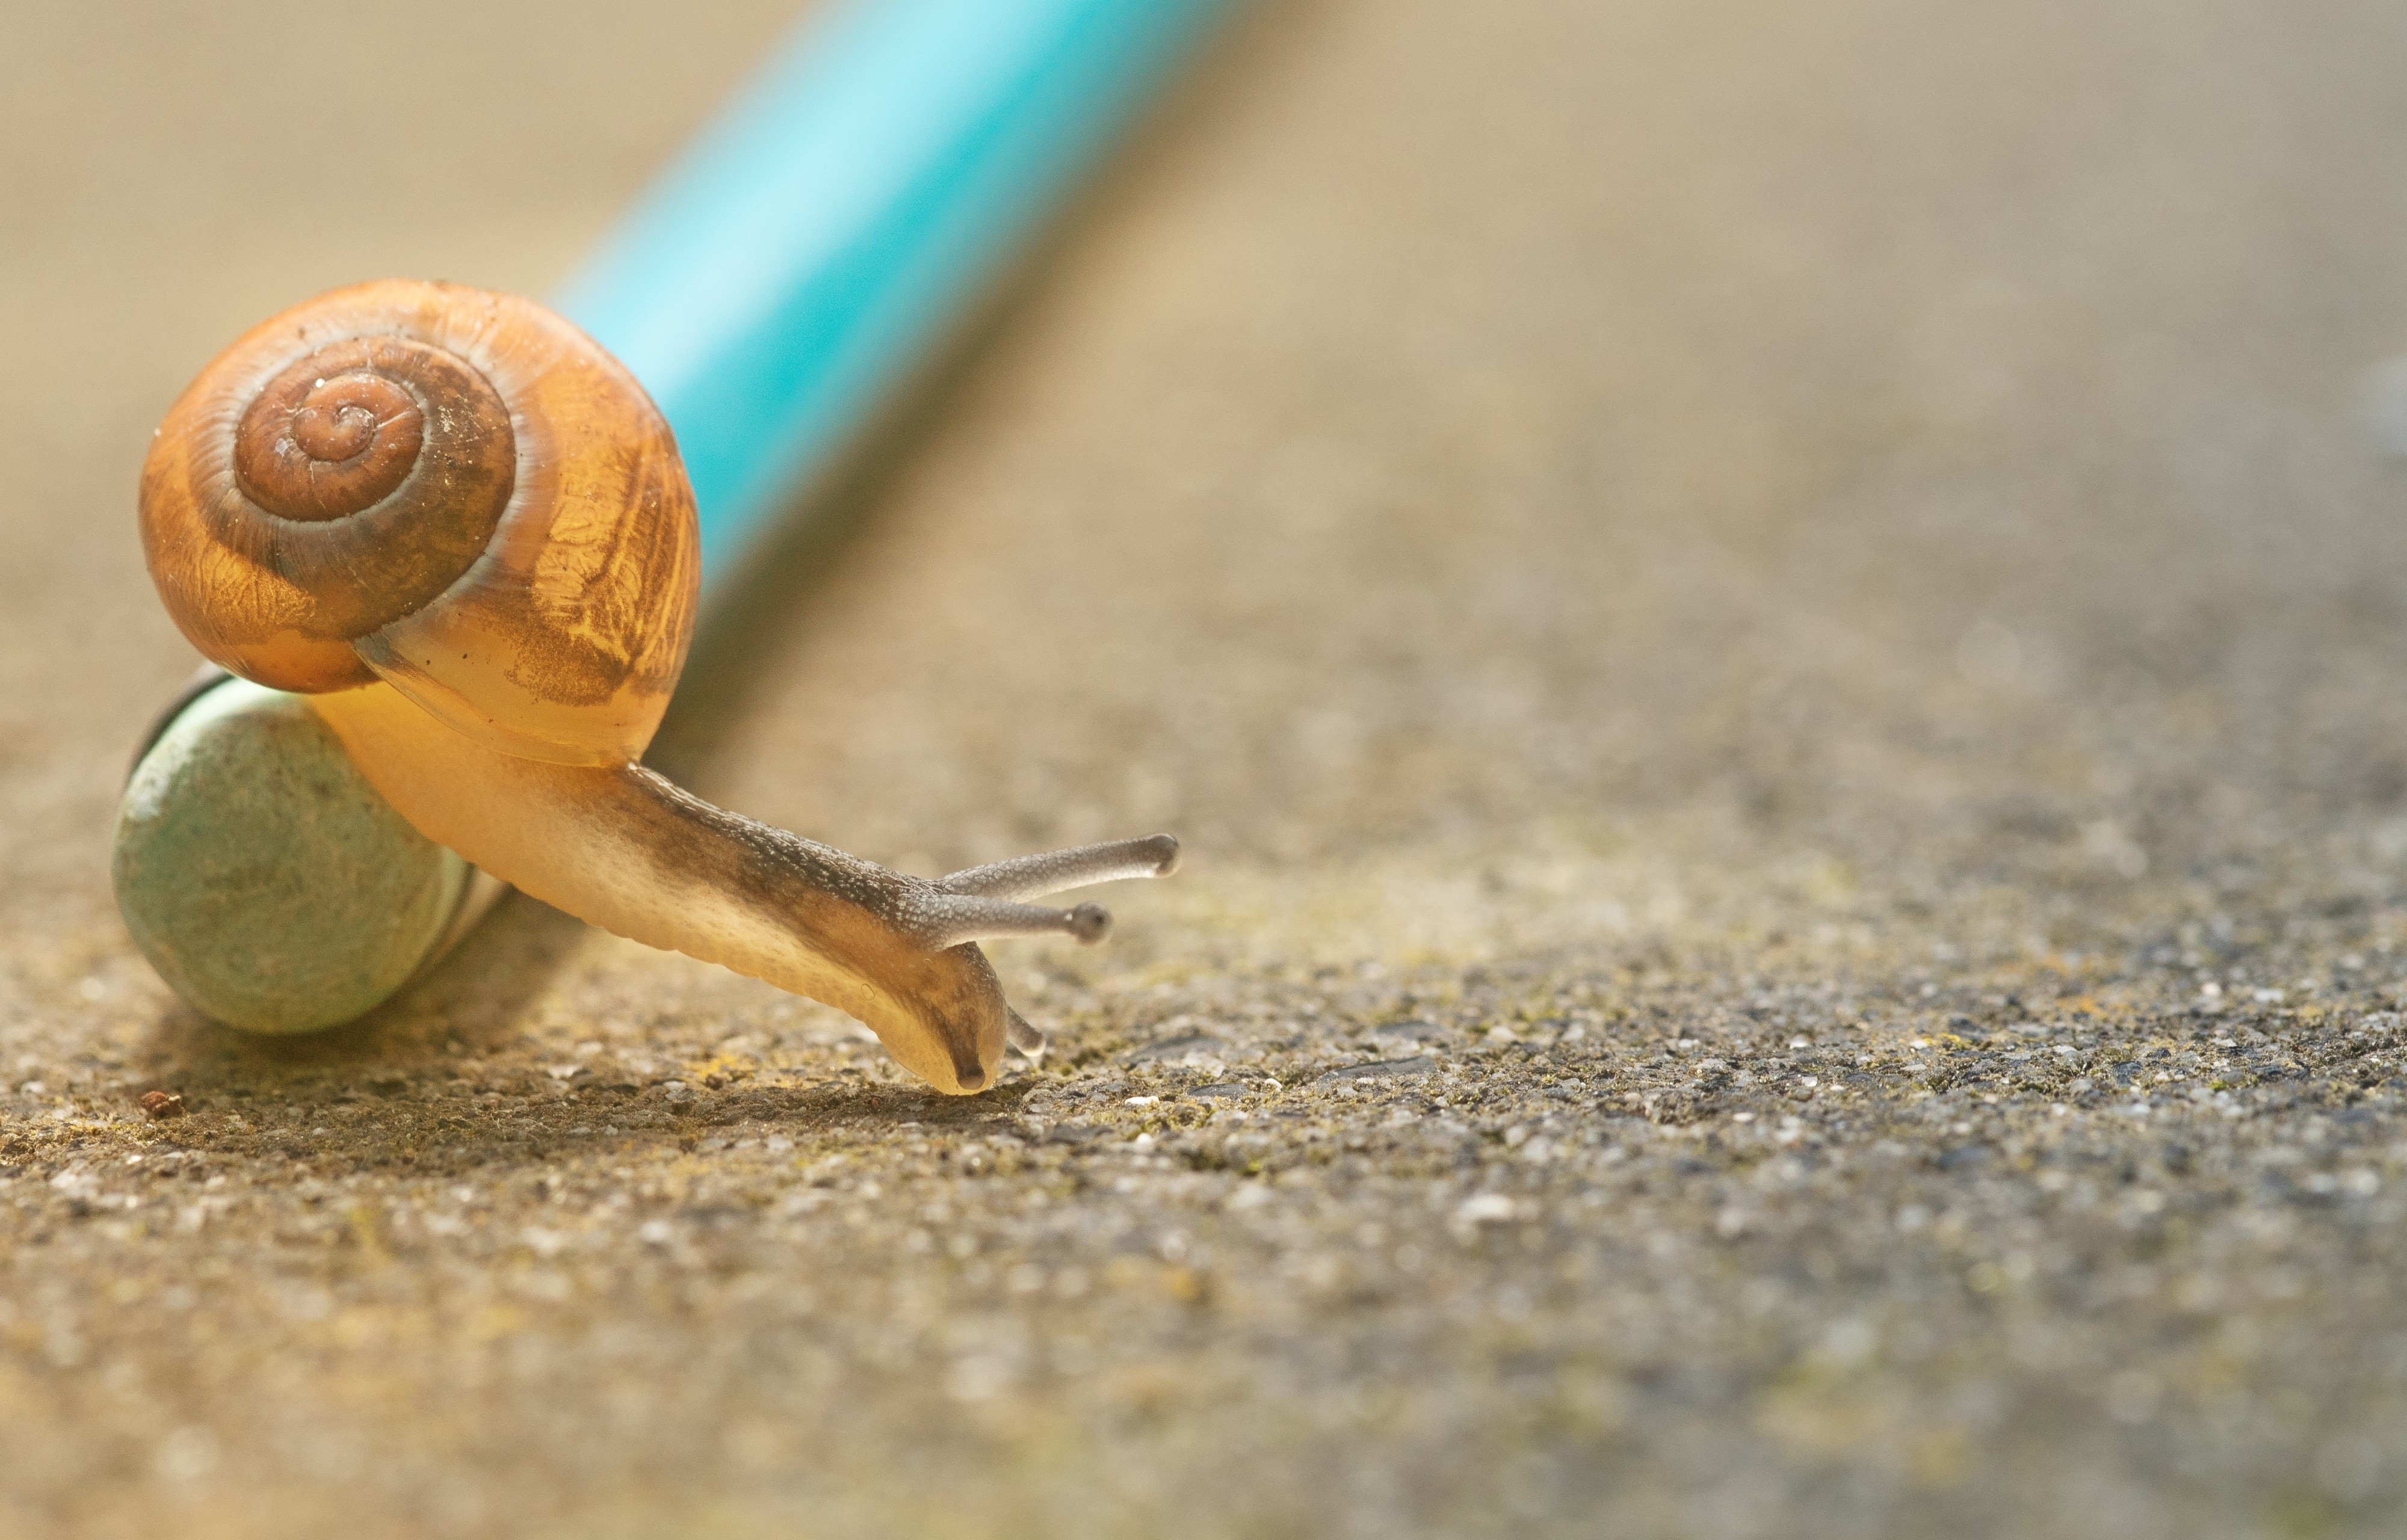 snail sliming over a writing implement